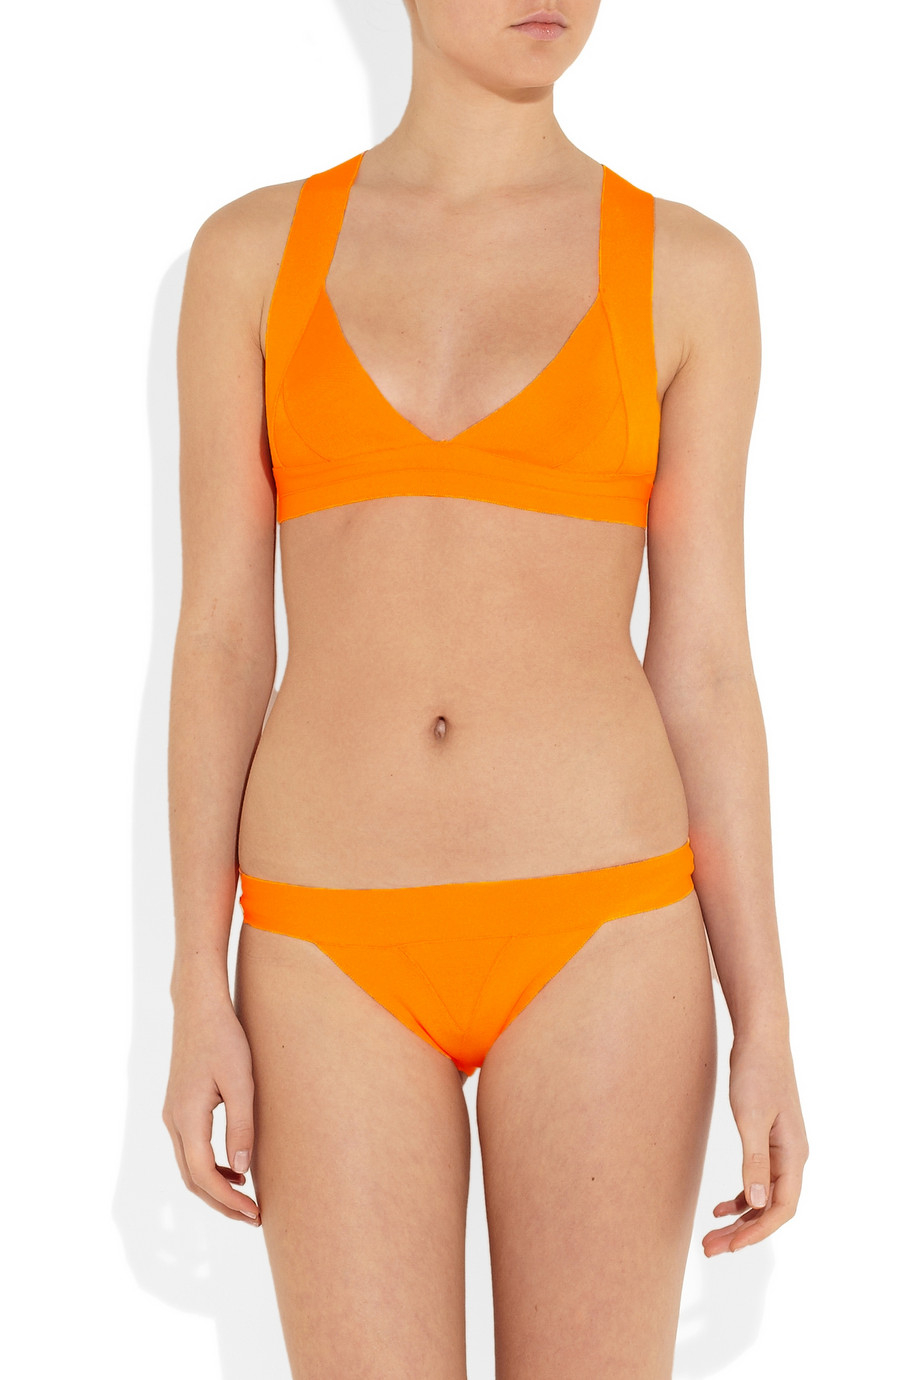 Herv 233 L 233 Ger Bandage Triangle Bikini In Orange Lyst